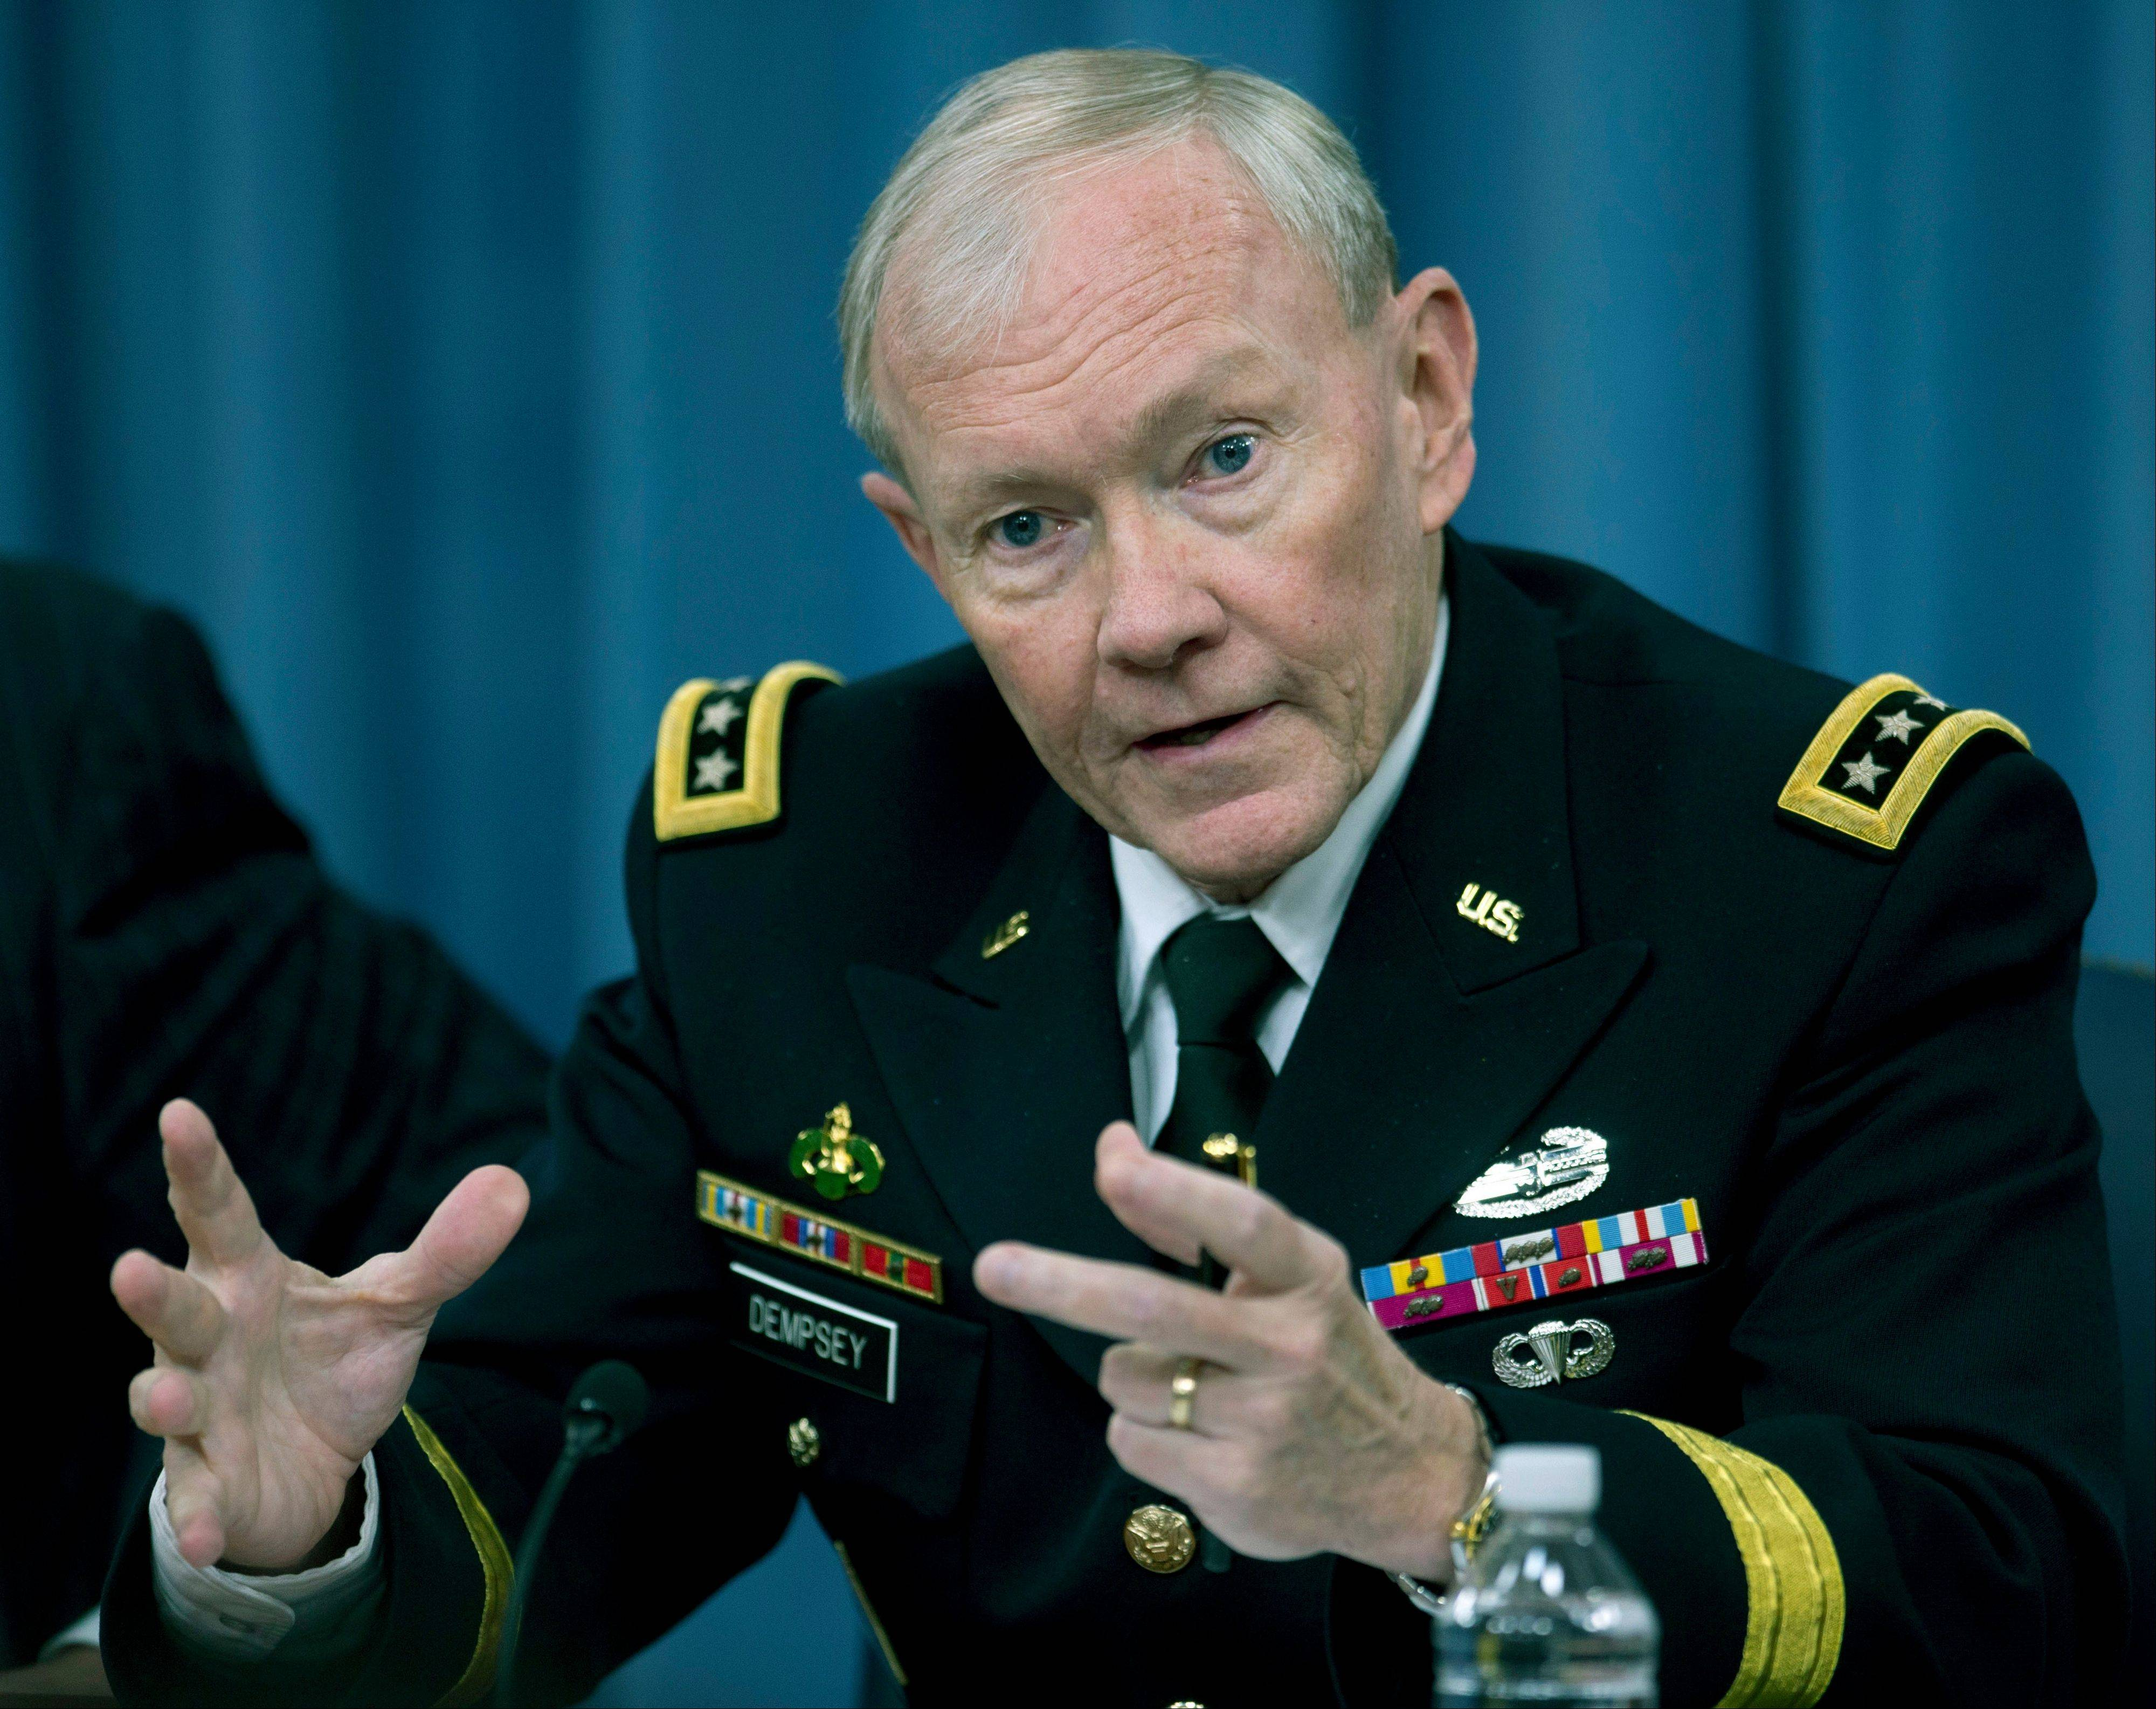 Joint Chiefs Chairman Gen. Martin Dempsey speaks during a news conference at the Pentagon on May 17 to discuss sexual assaults in the military and other topics.